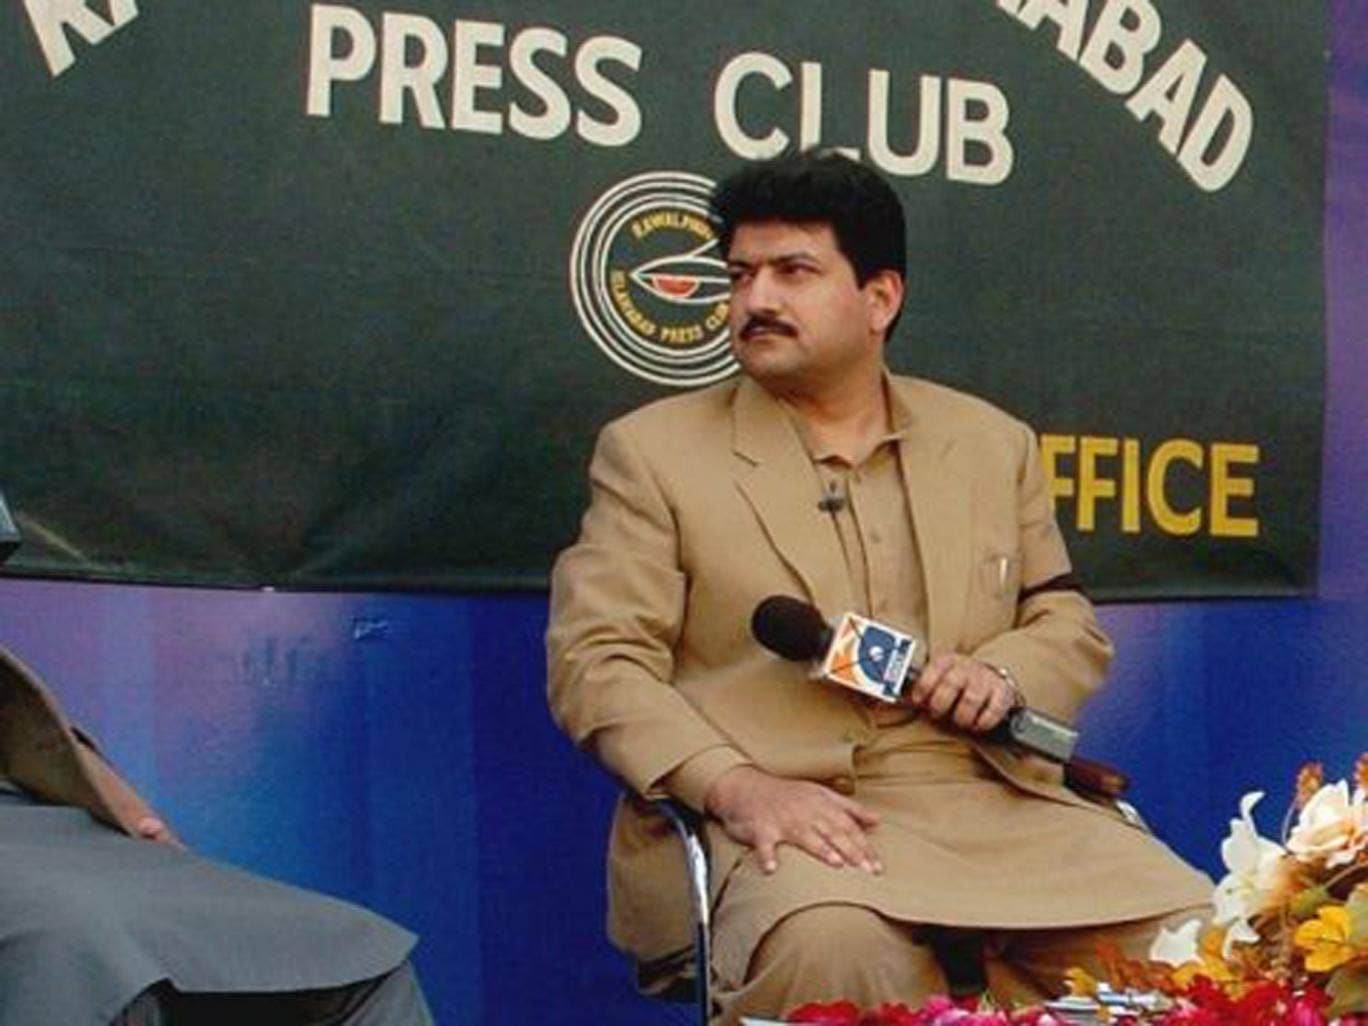 Police say Hamid Mir, a host on the private television broadcaster Geo, was wounded in the attack Saturday near Karachi's airport